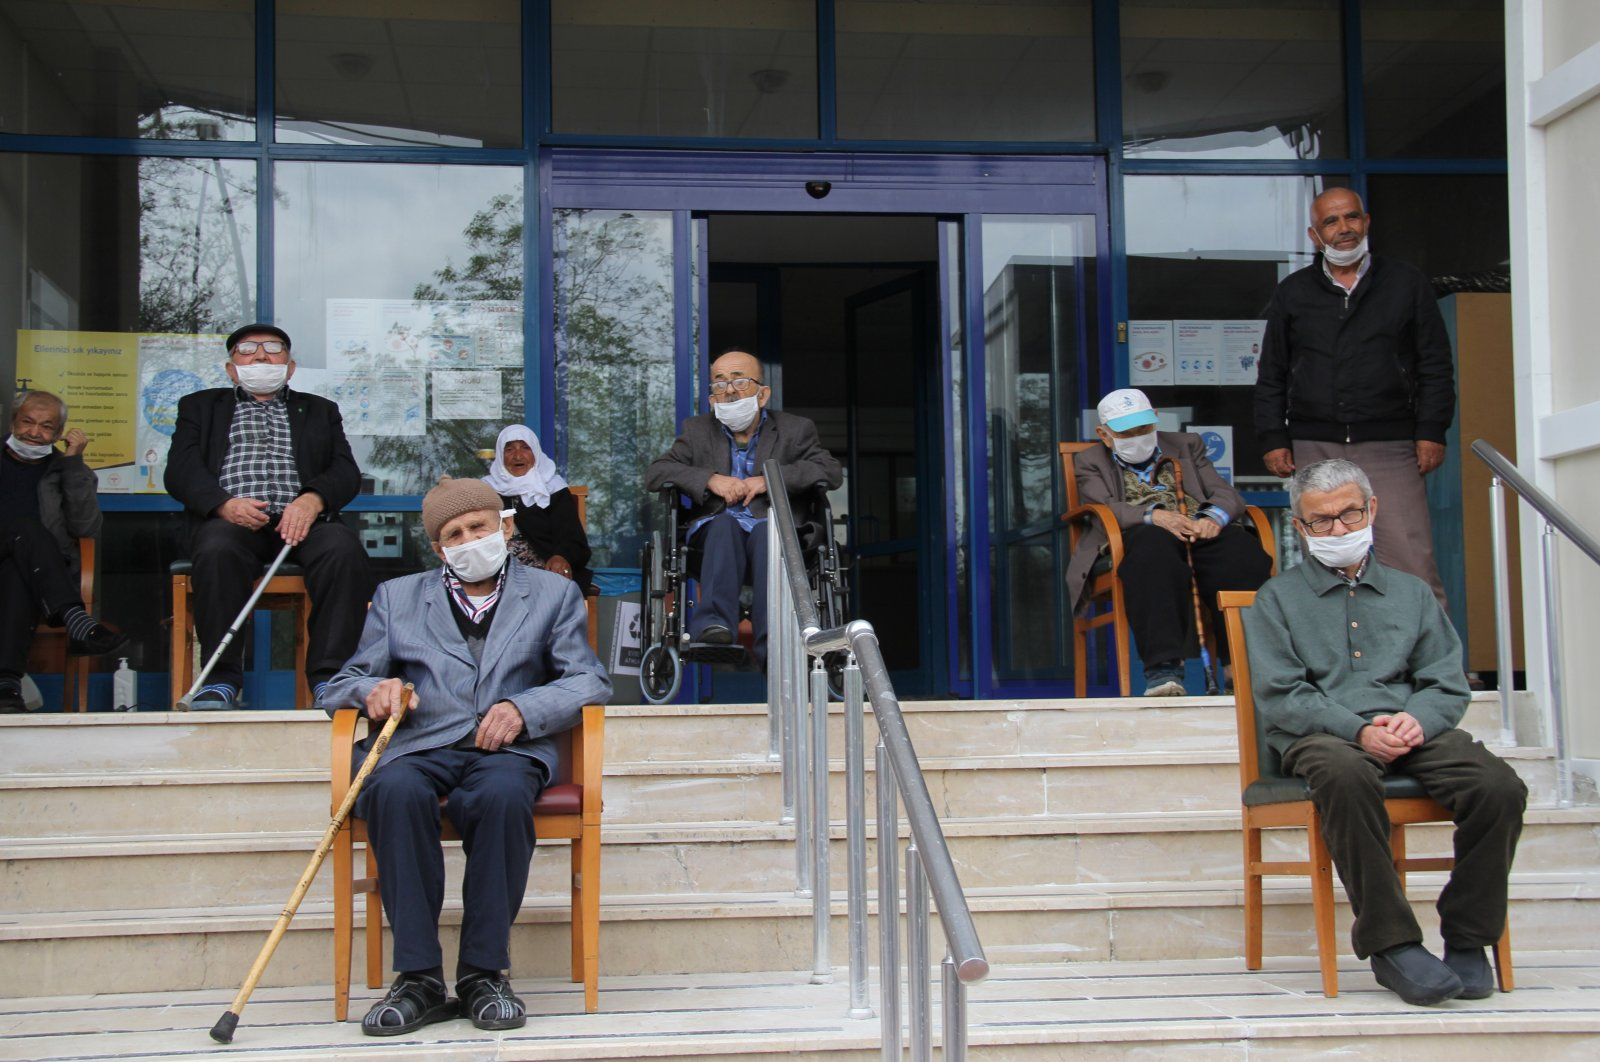 A group of nursing home residents wearing masks watch a concert in the courtyard, Karabük, Turkey, April 27, 2020. (İHA Photo)